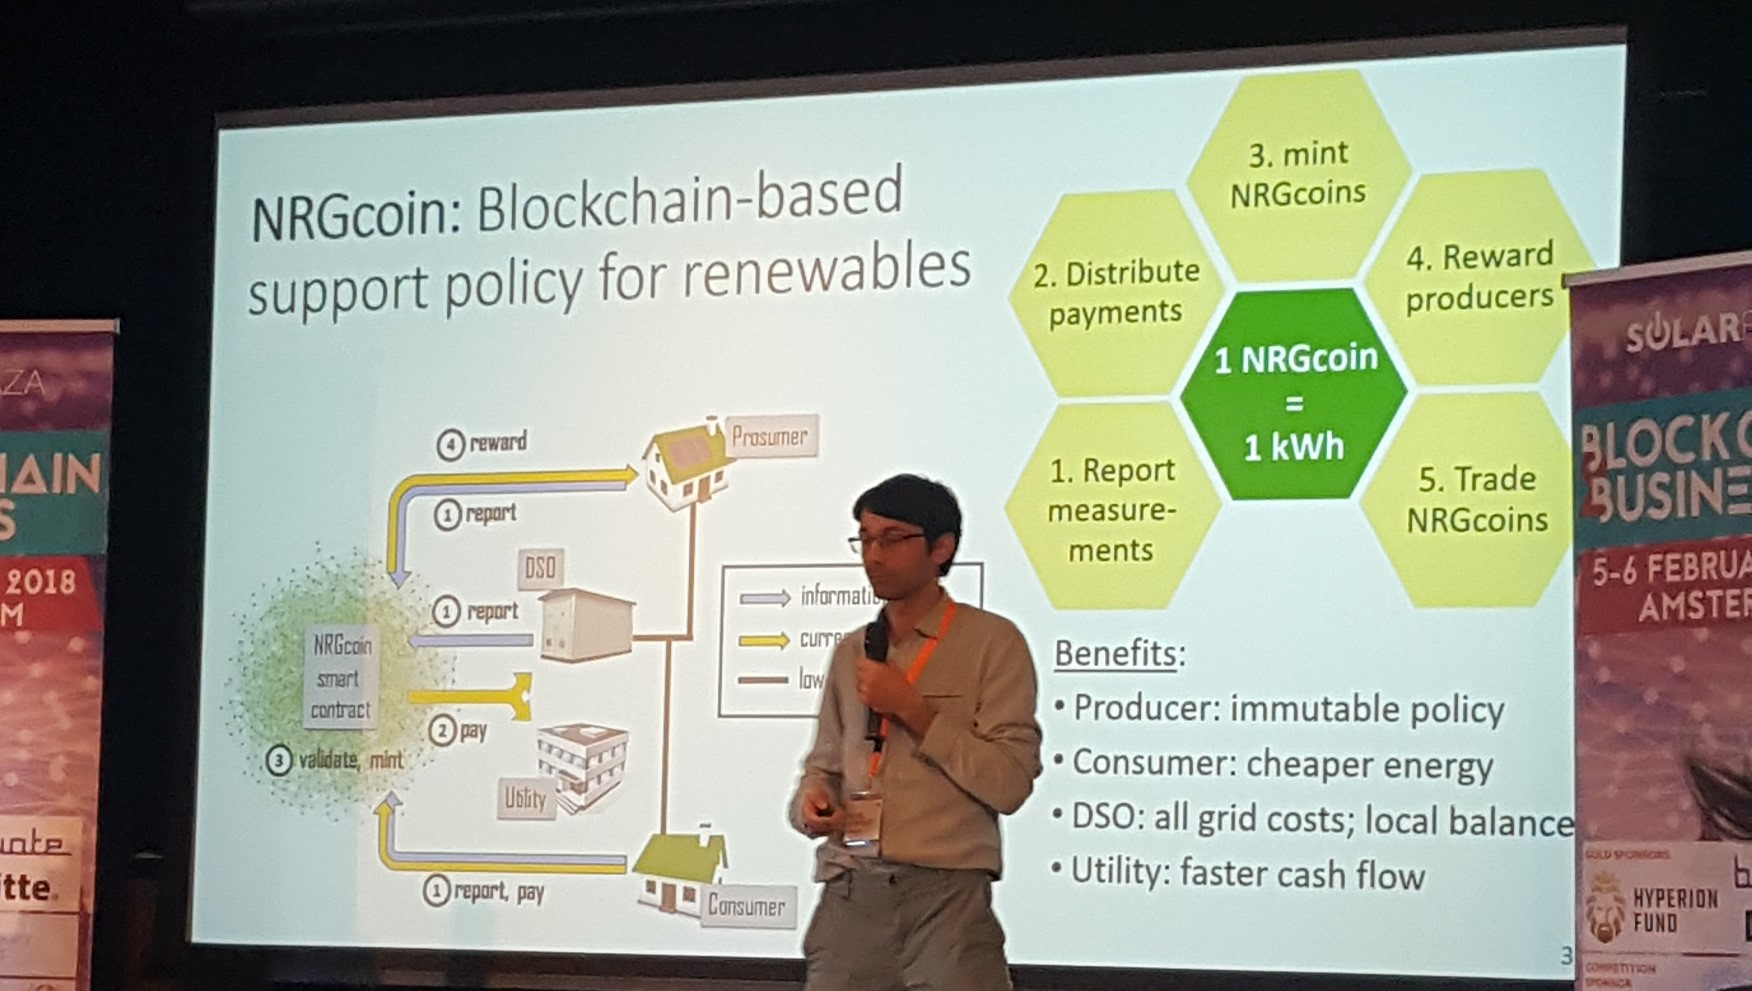 Mihail Mihaylow presents NRGcoin at Blockchain2Business day 2